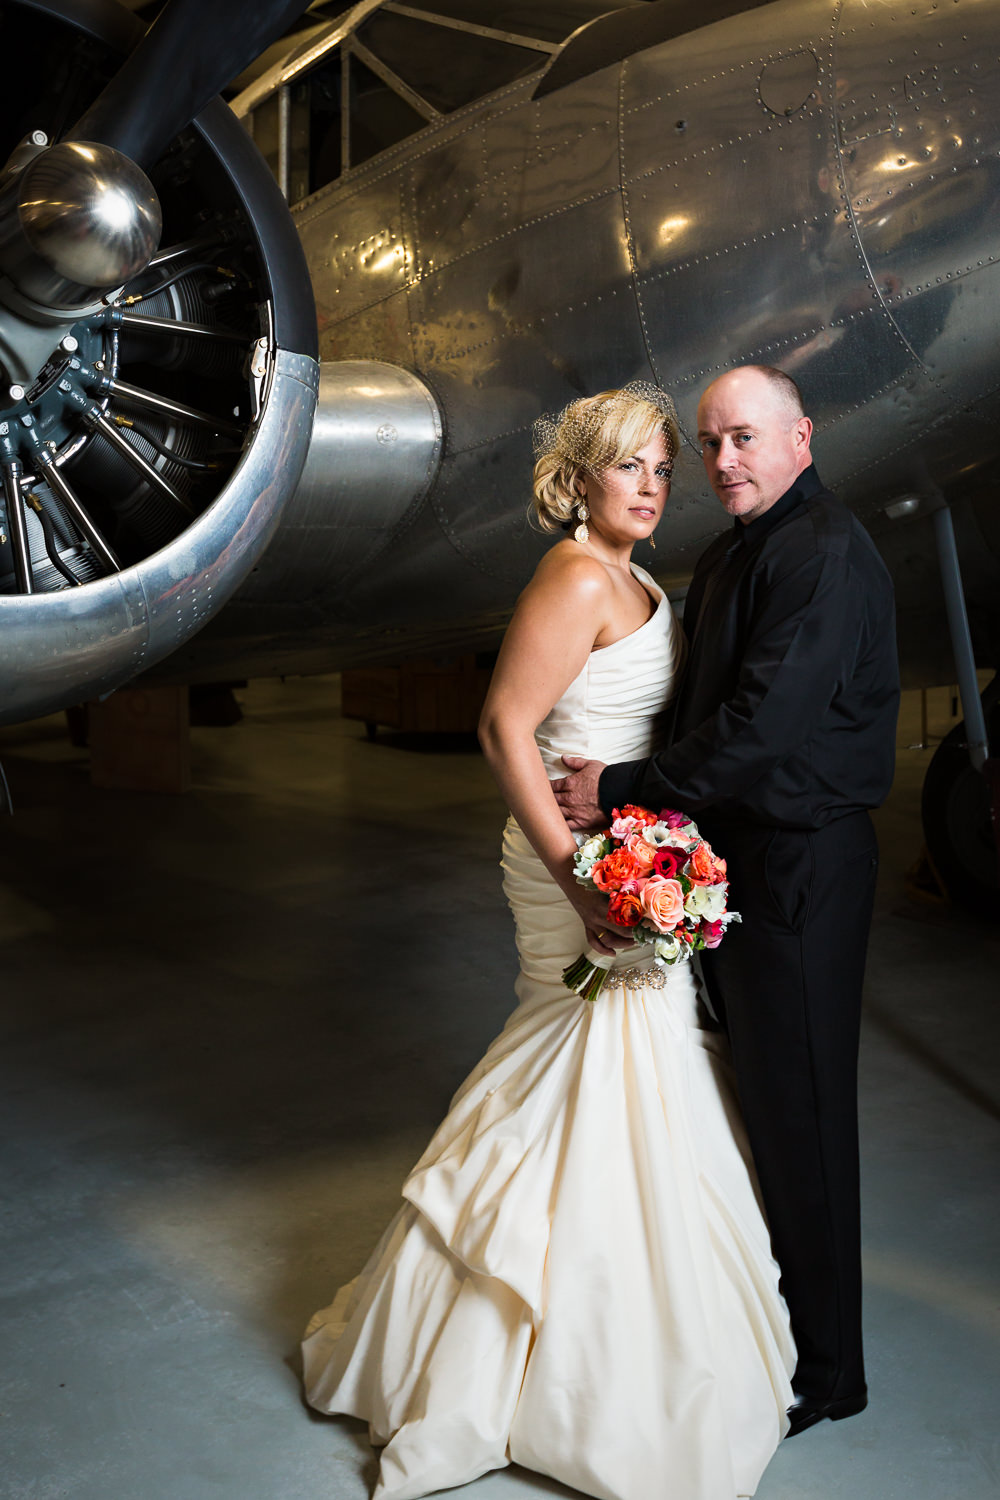 missoula-museum-mountain-flying-wedding-couple-formal-by-airplane.jpg